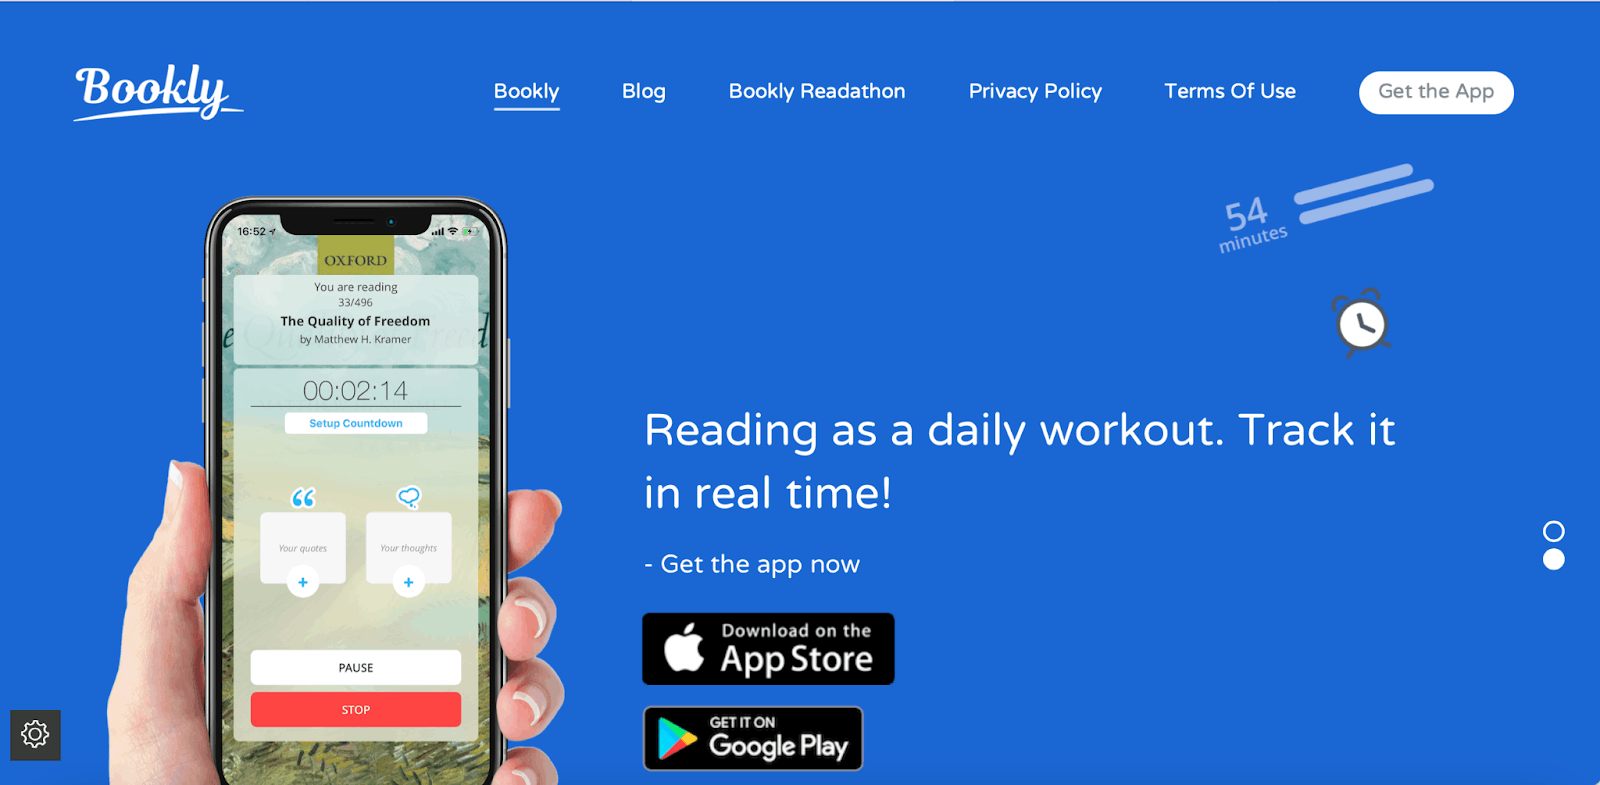 Learn How To Read More Books With The Bookly App